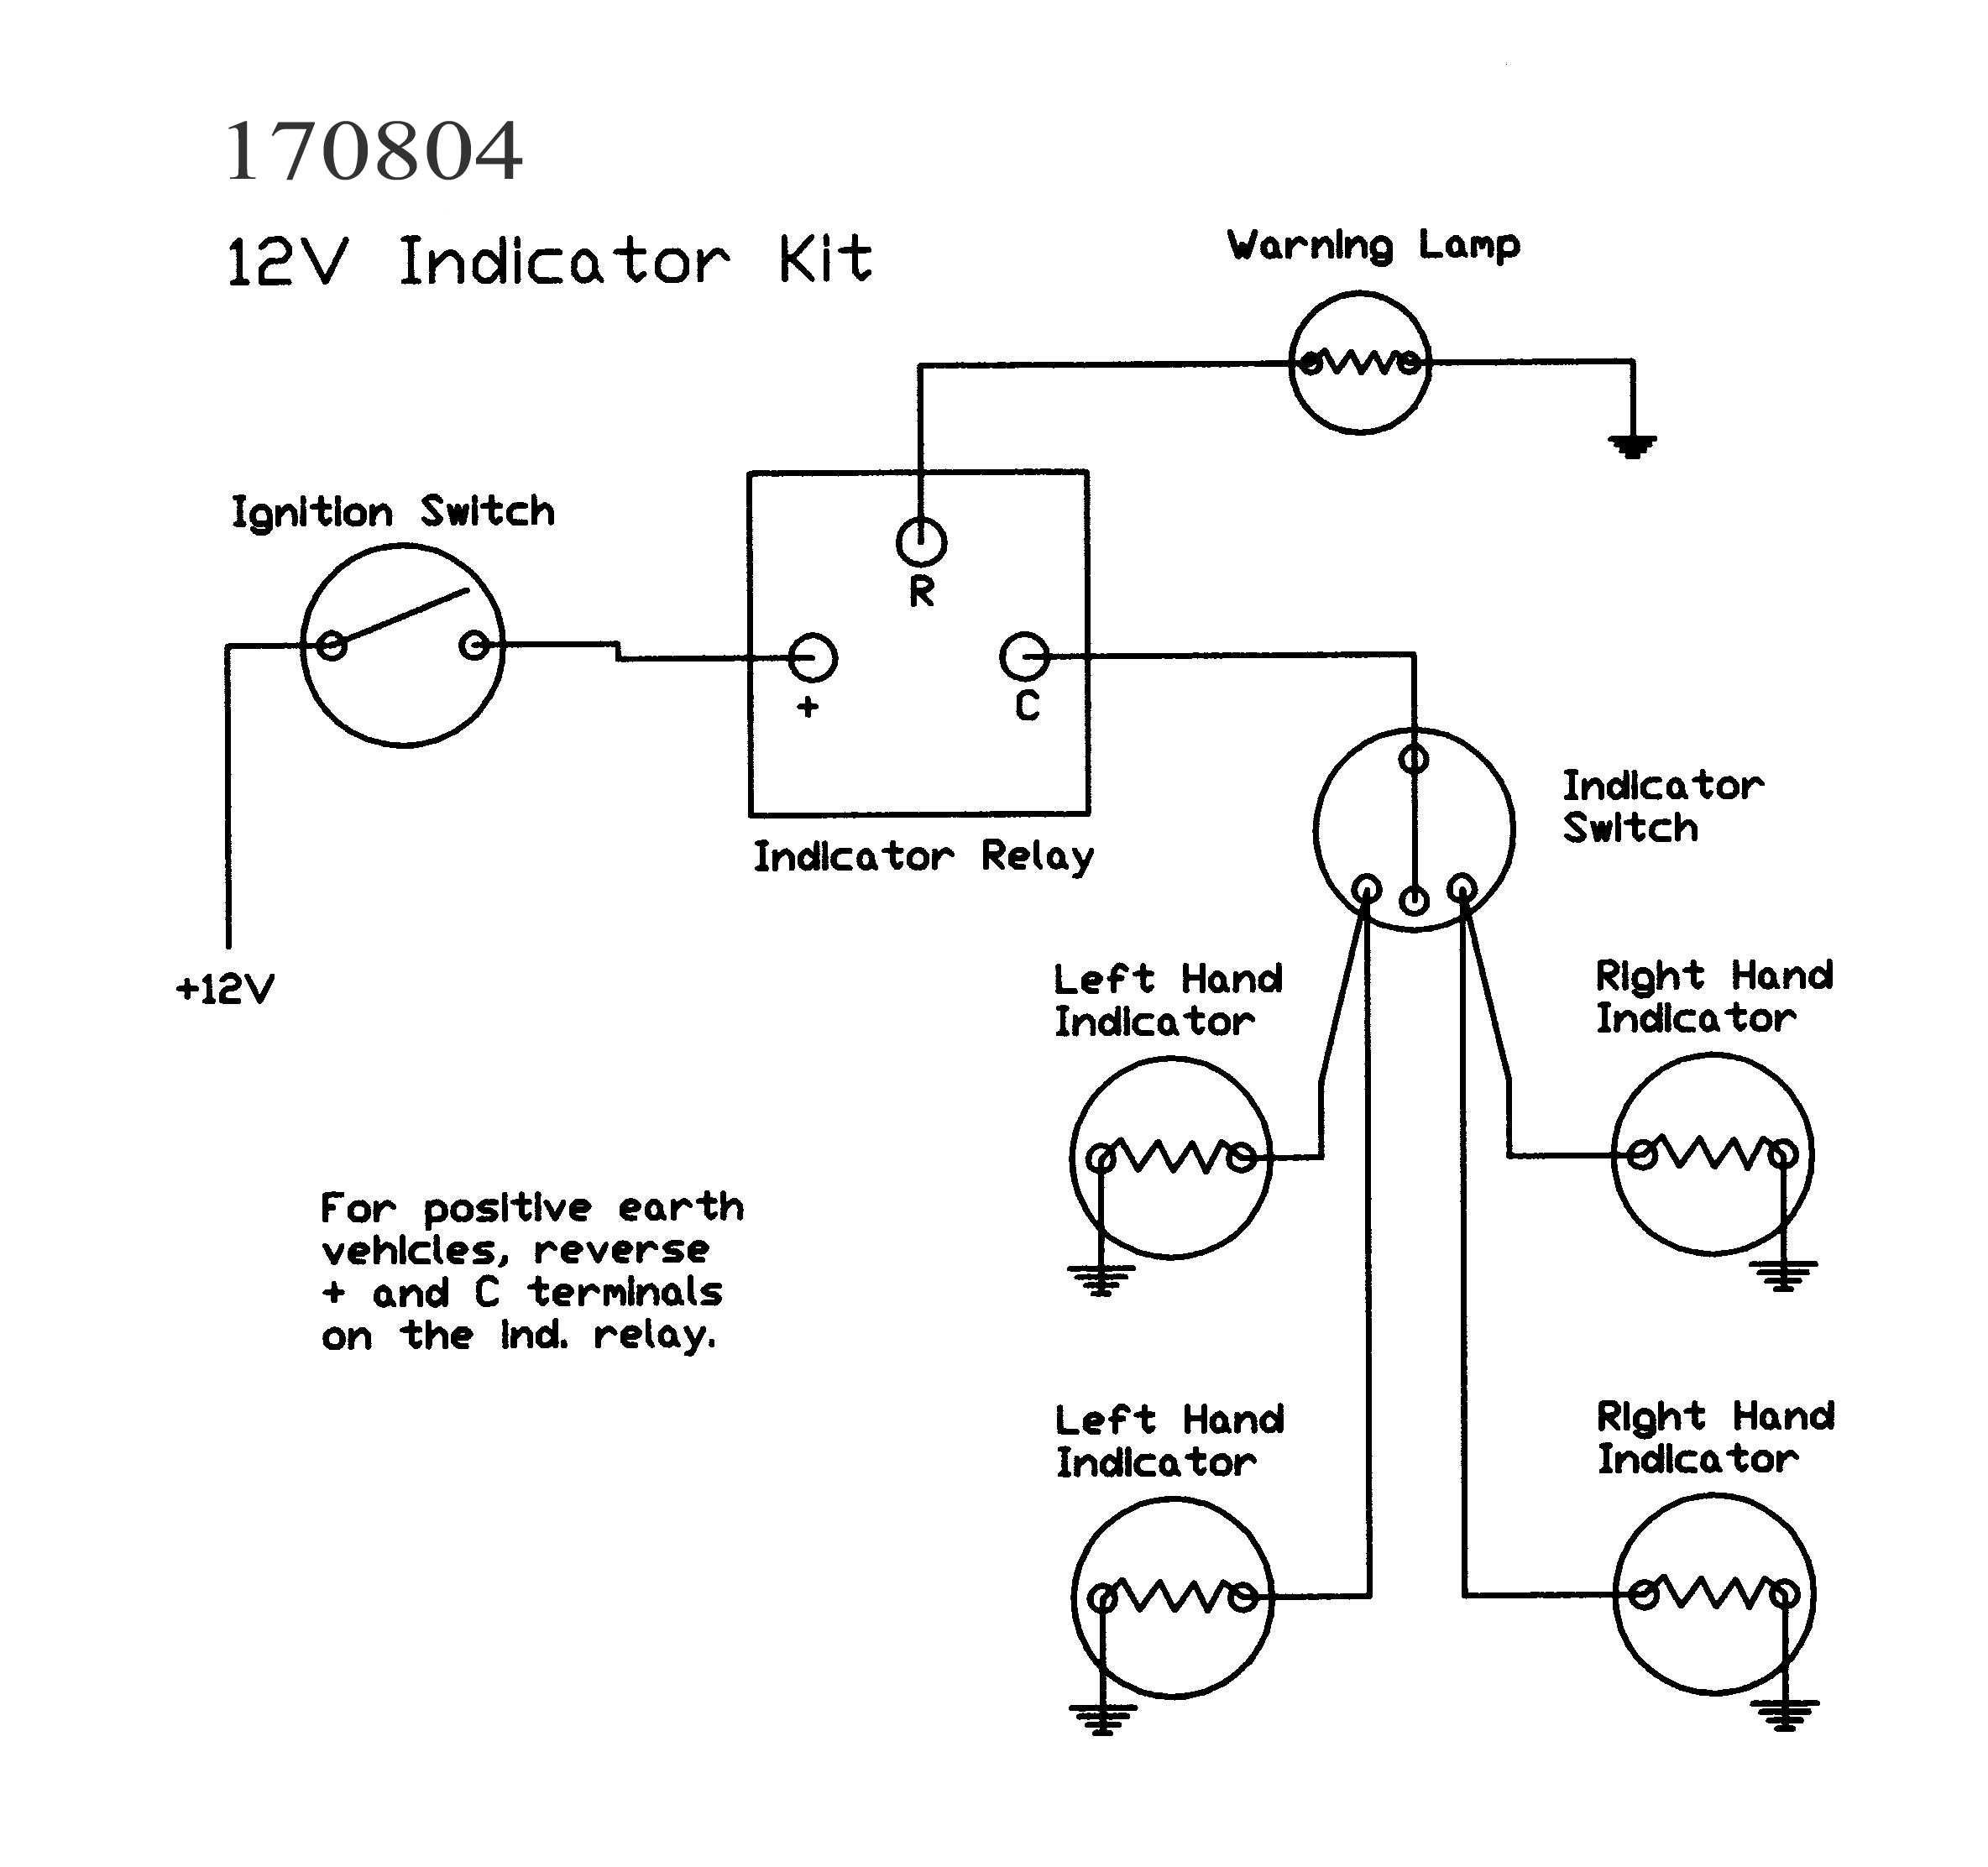 Indicator Kits Without Lamps Light Circuit Wiring Diagram 170803 170804 12v Schematic